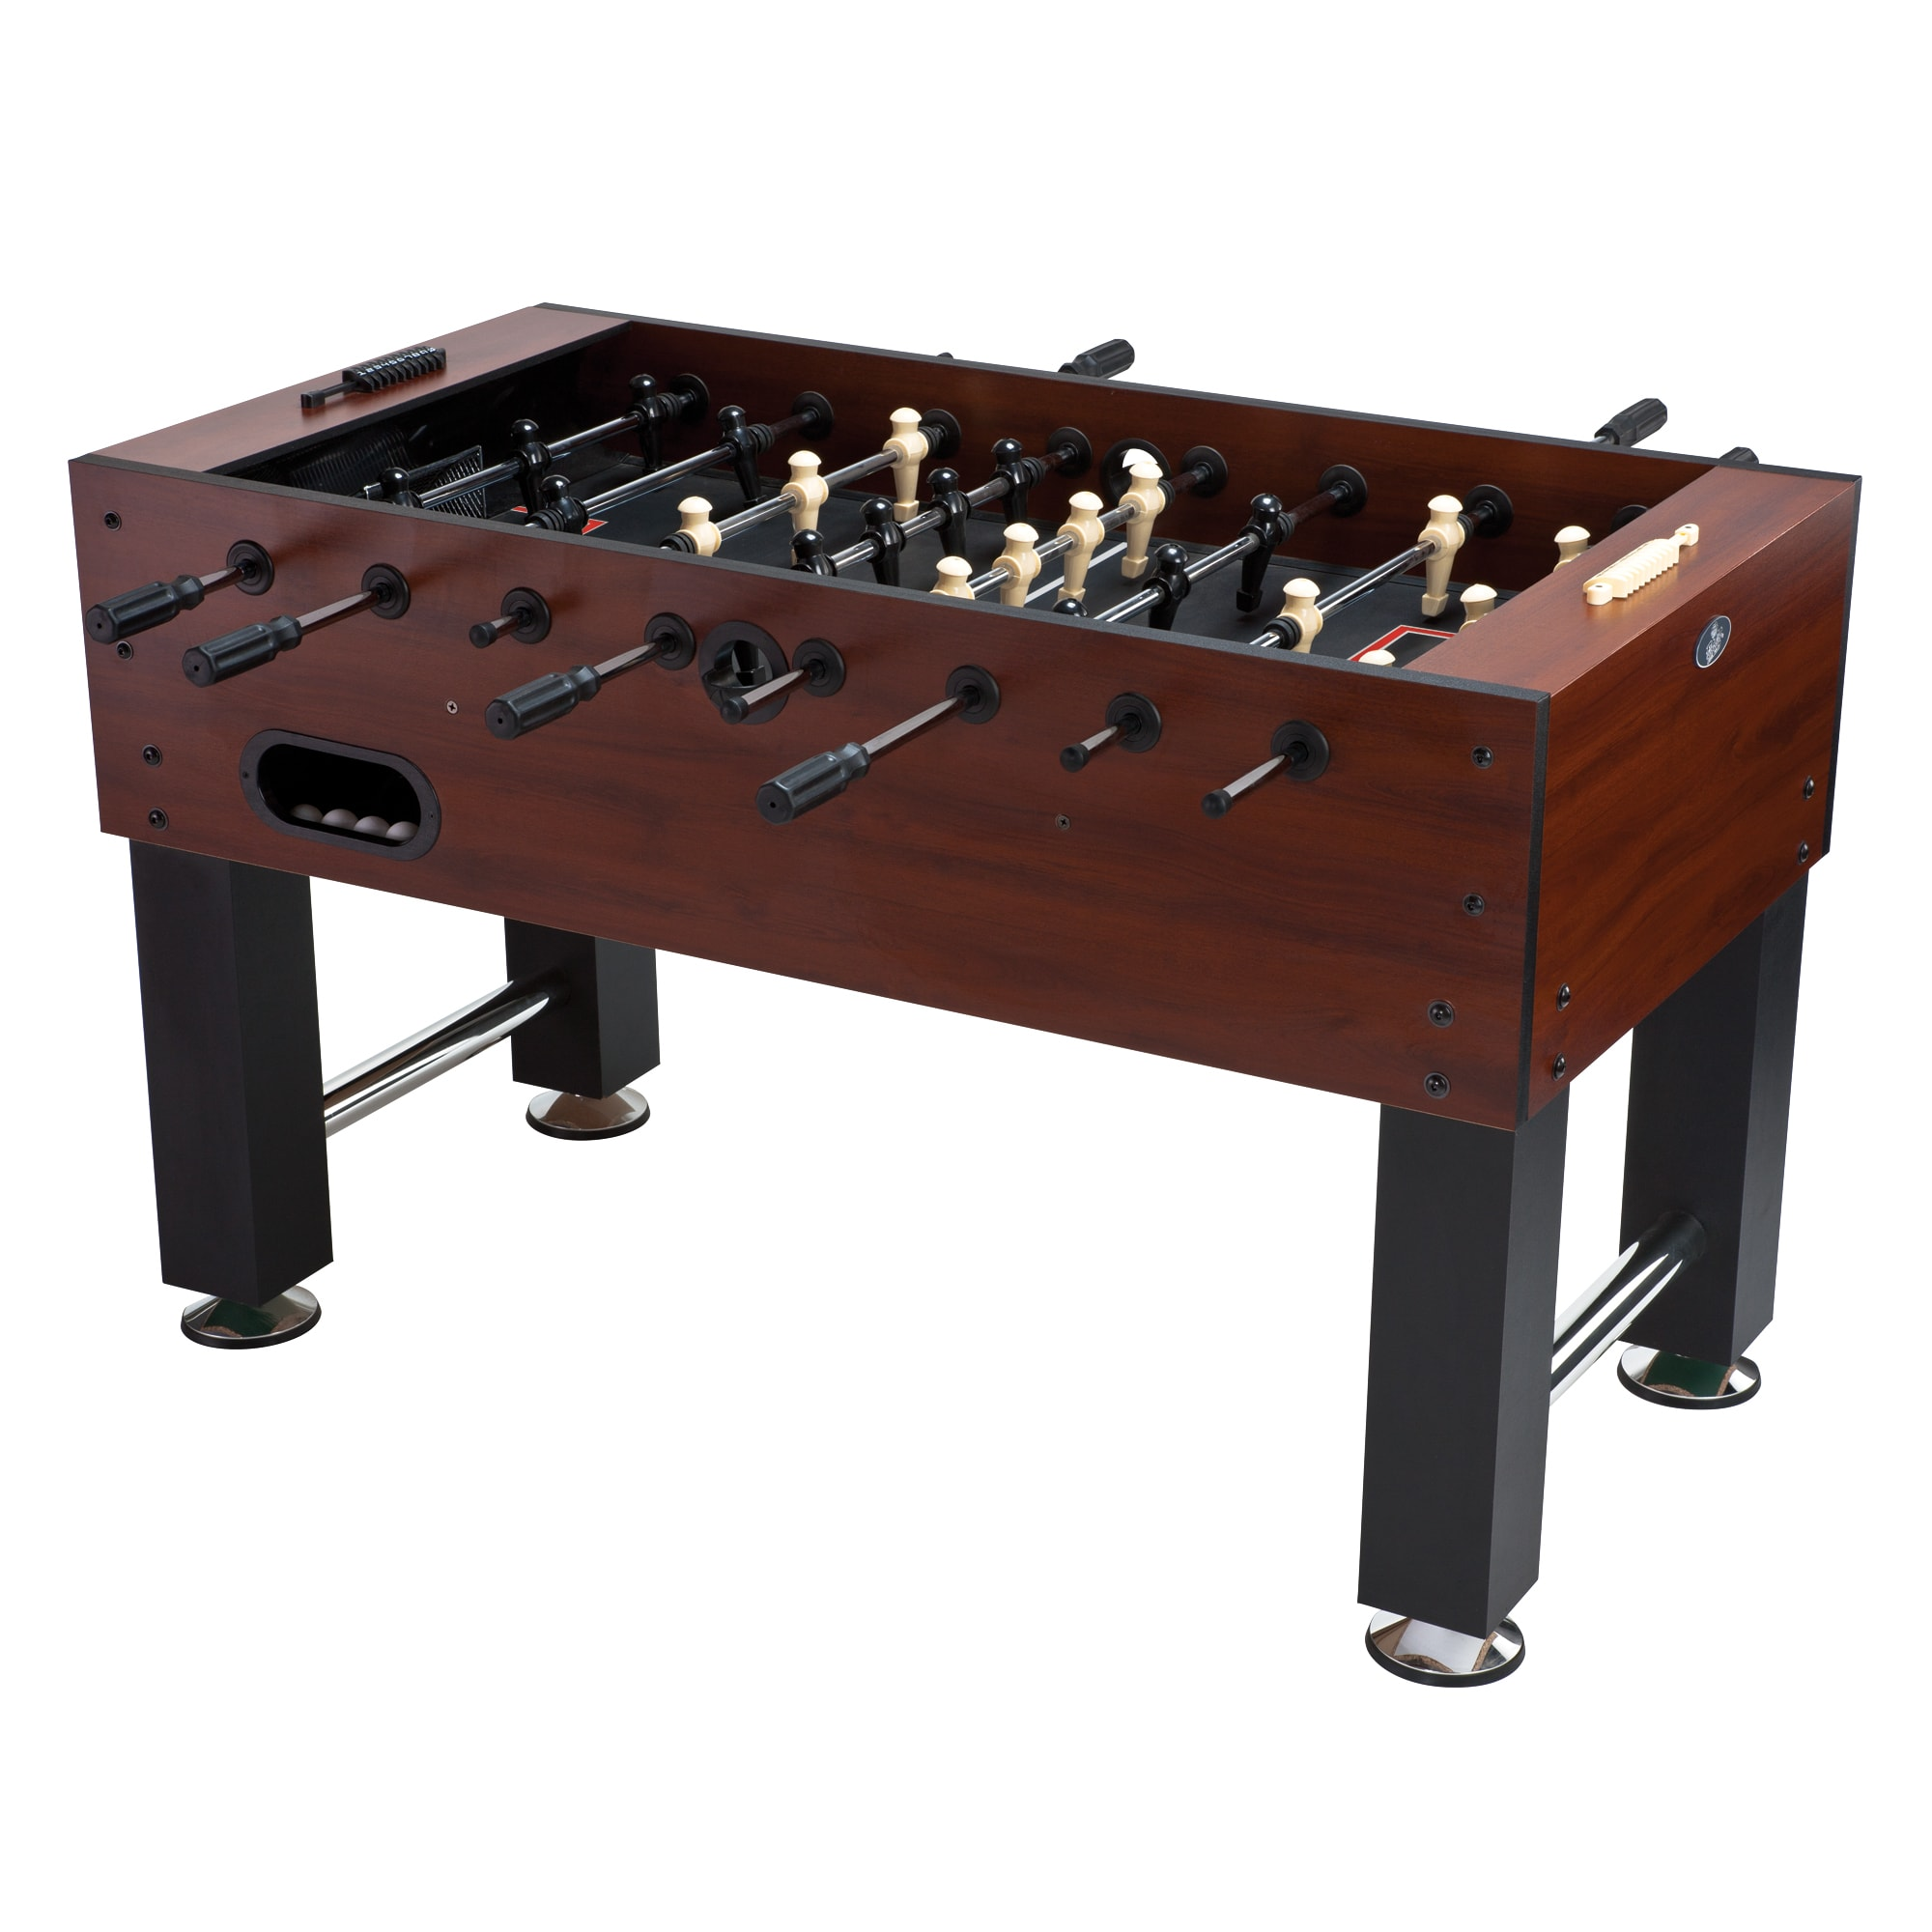 Fat Cat Tirade Mmxi 4 5 Foosball Table With Robot Style